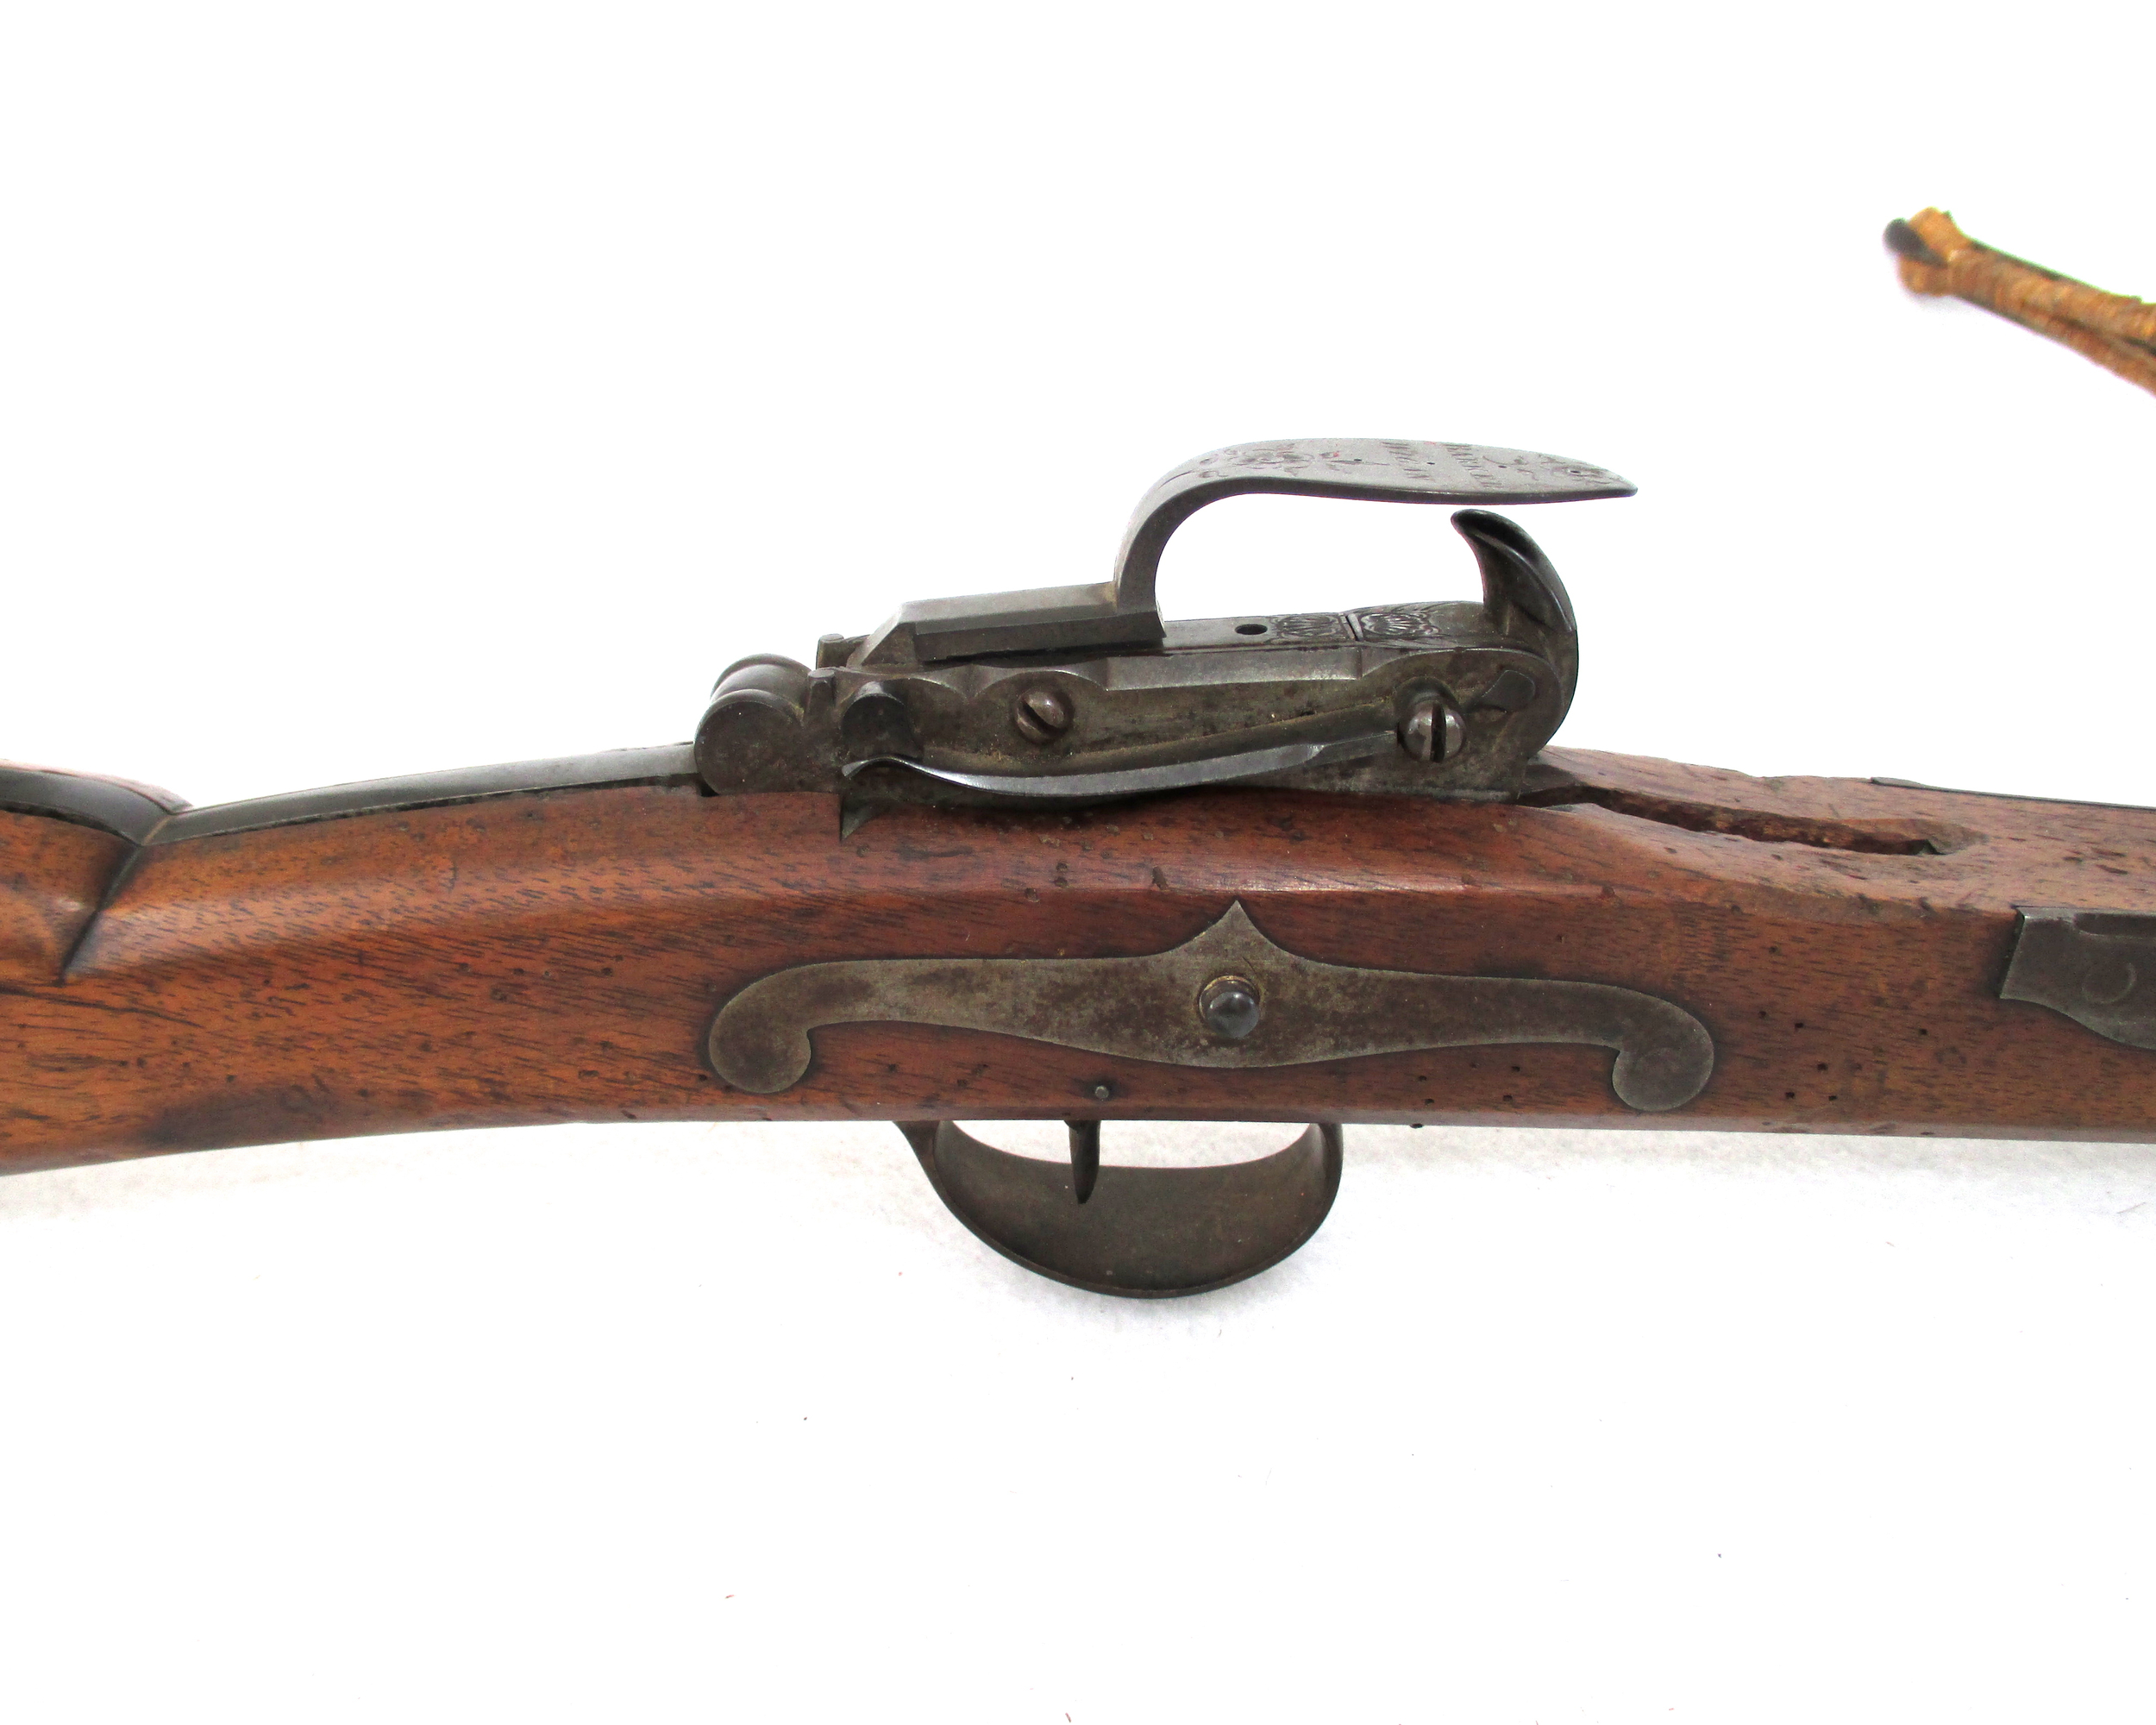 english-stonebow-crossbow-pellet-weapon-barker-gary-friedland-antique-arms-armor4.jpg